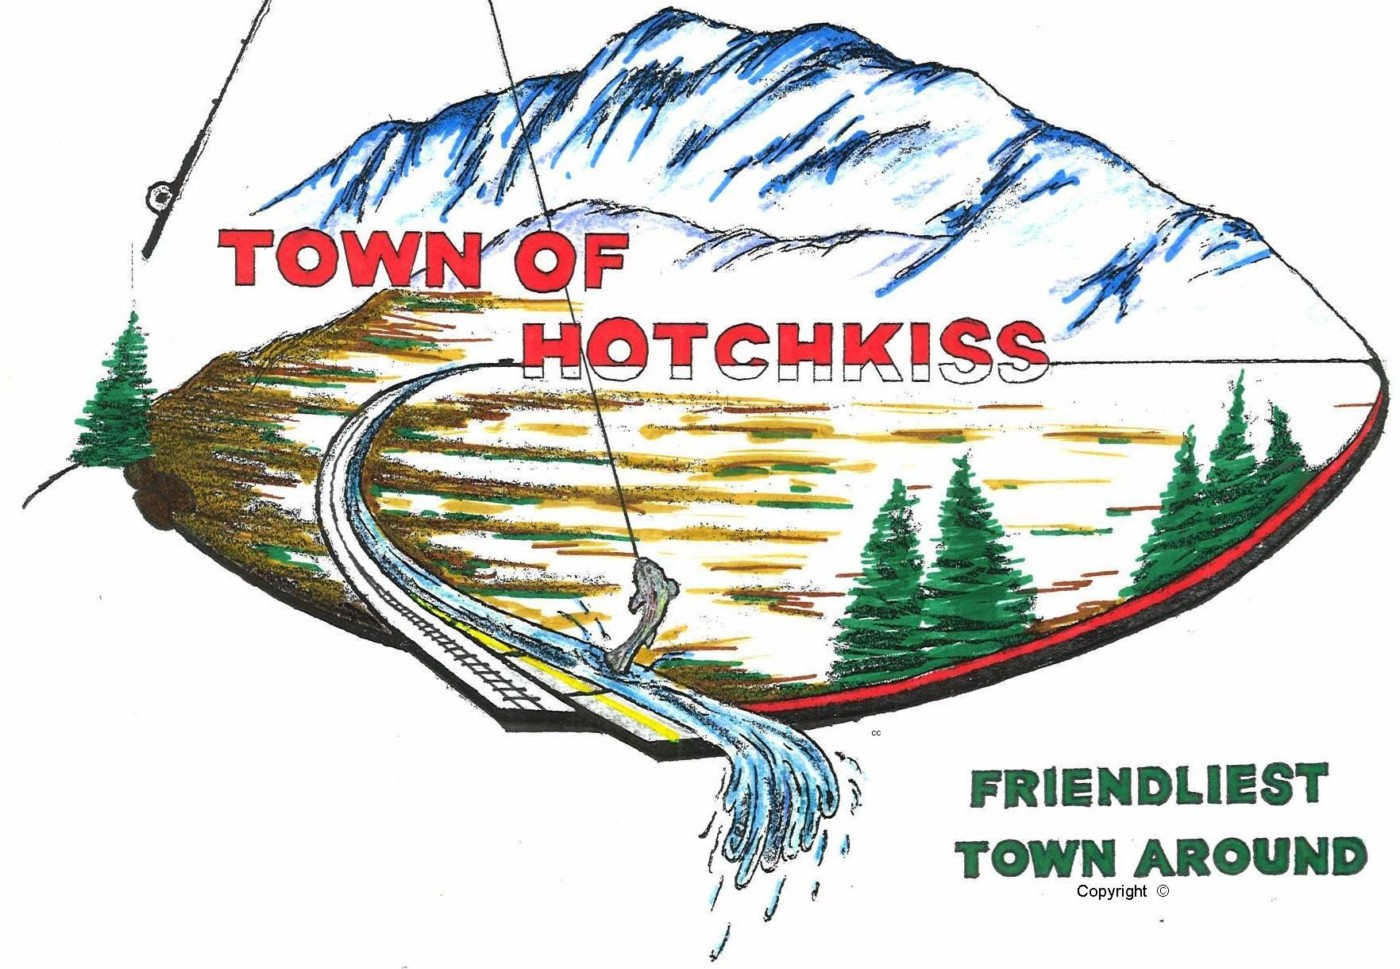 Town of Hotchkiss